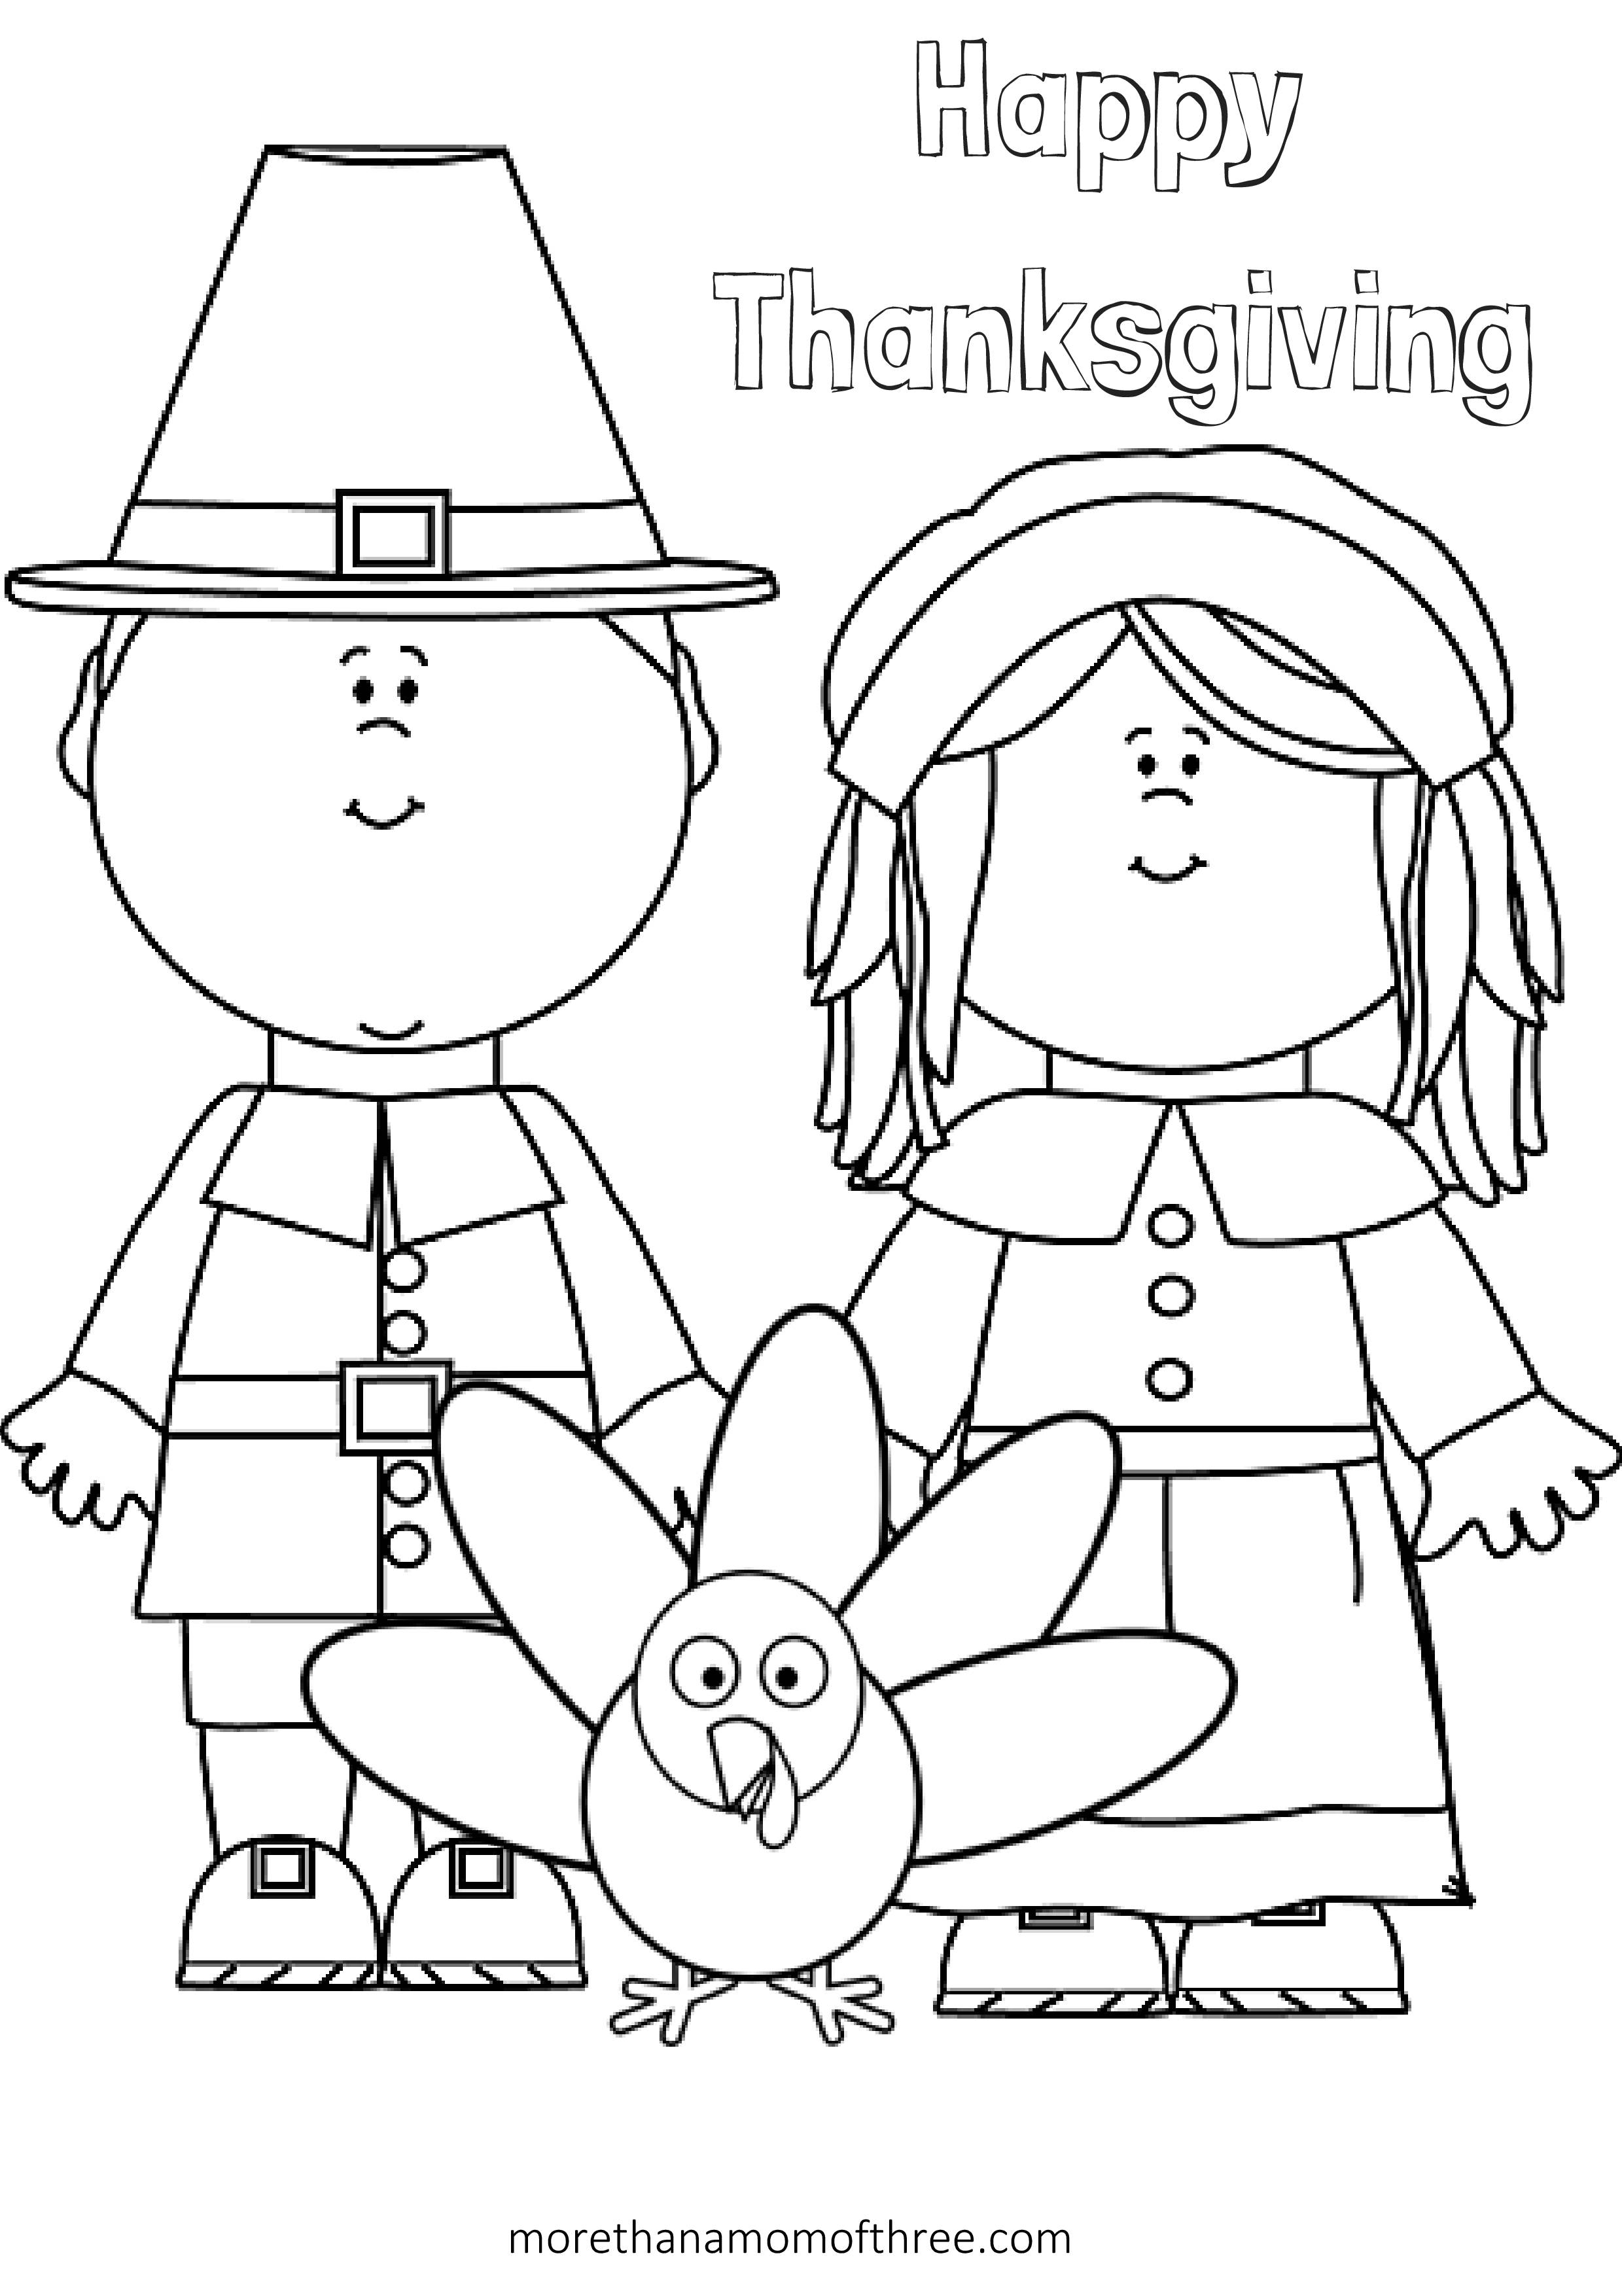 thanksgiving coloring pages religious cross - photo#12